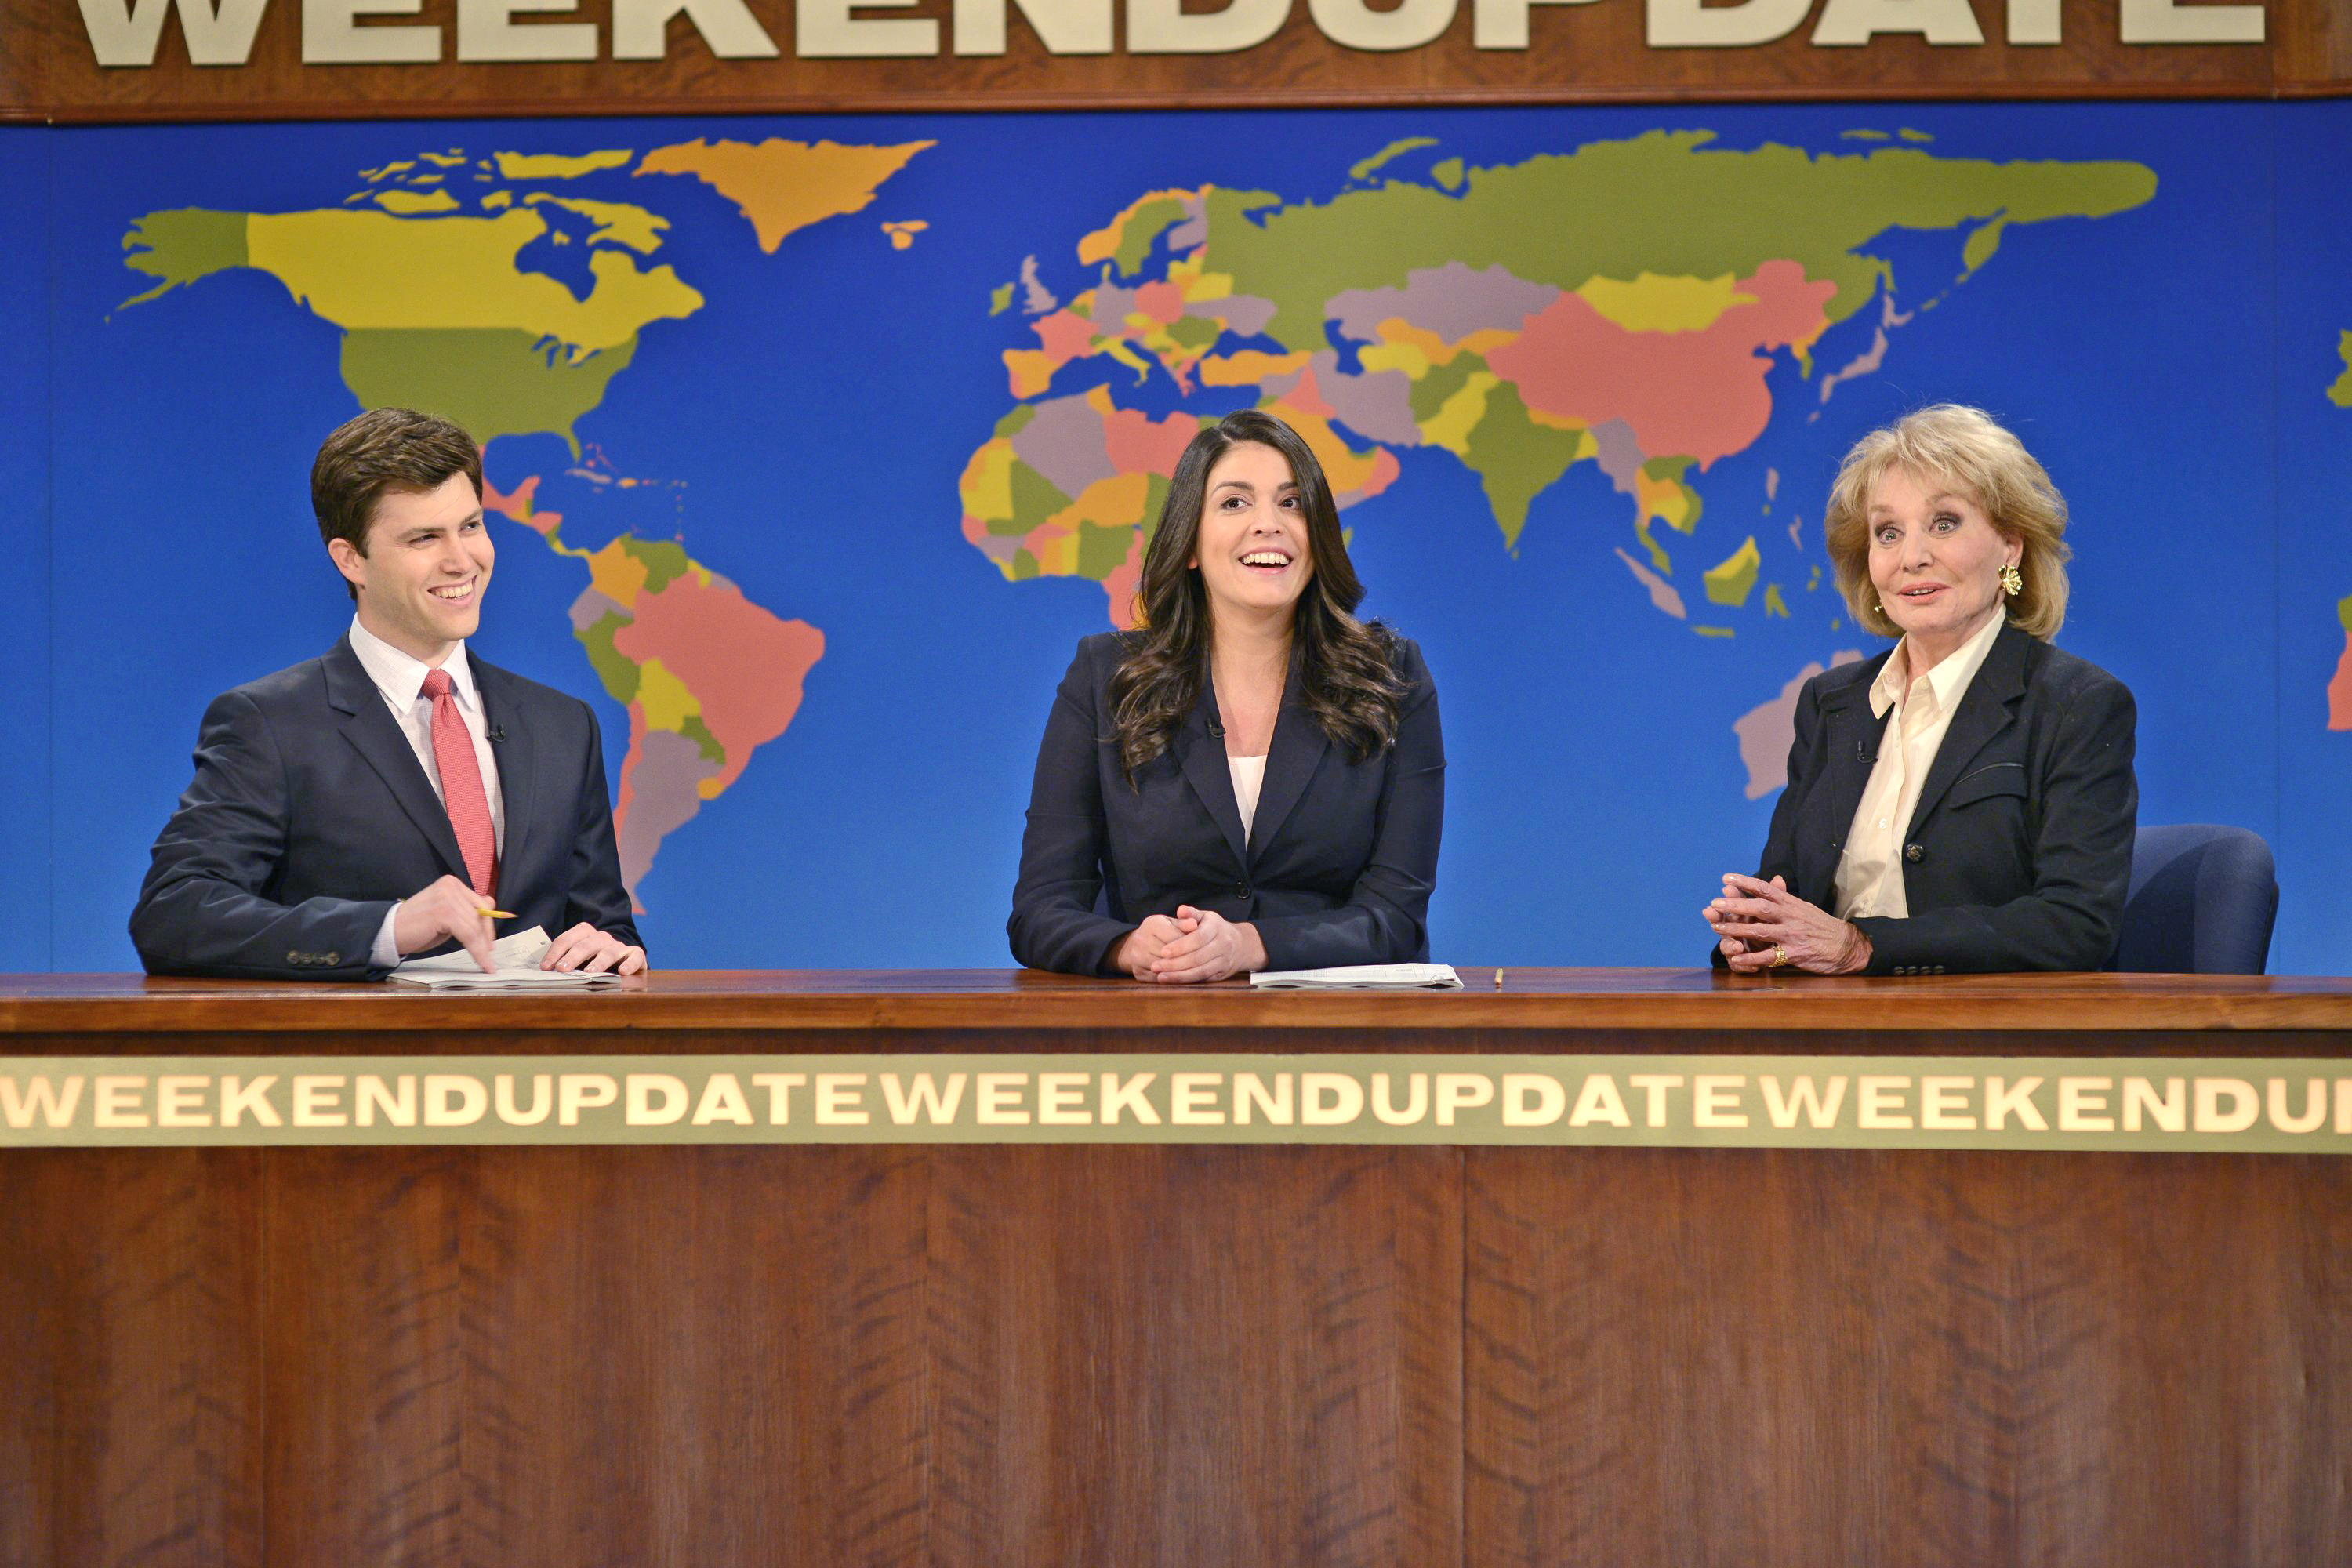 Snl Barbara Walters Discusses Her Retirement On Weekend Update Time